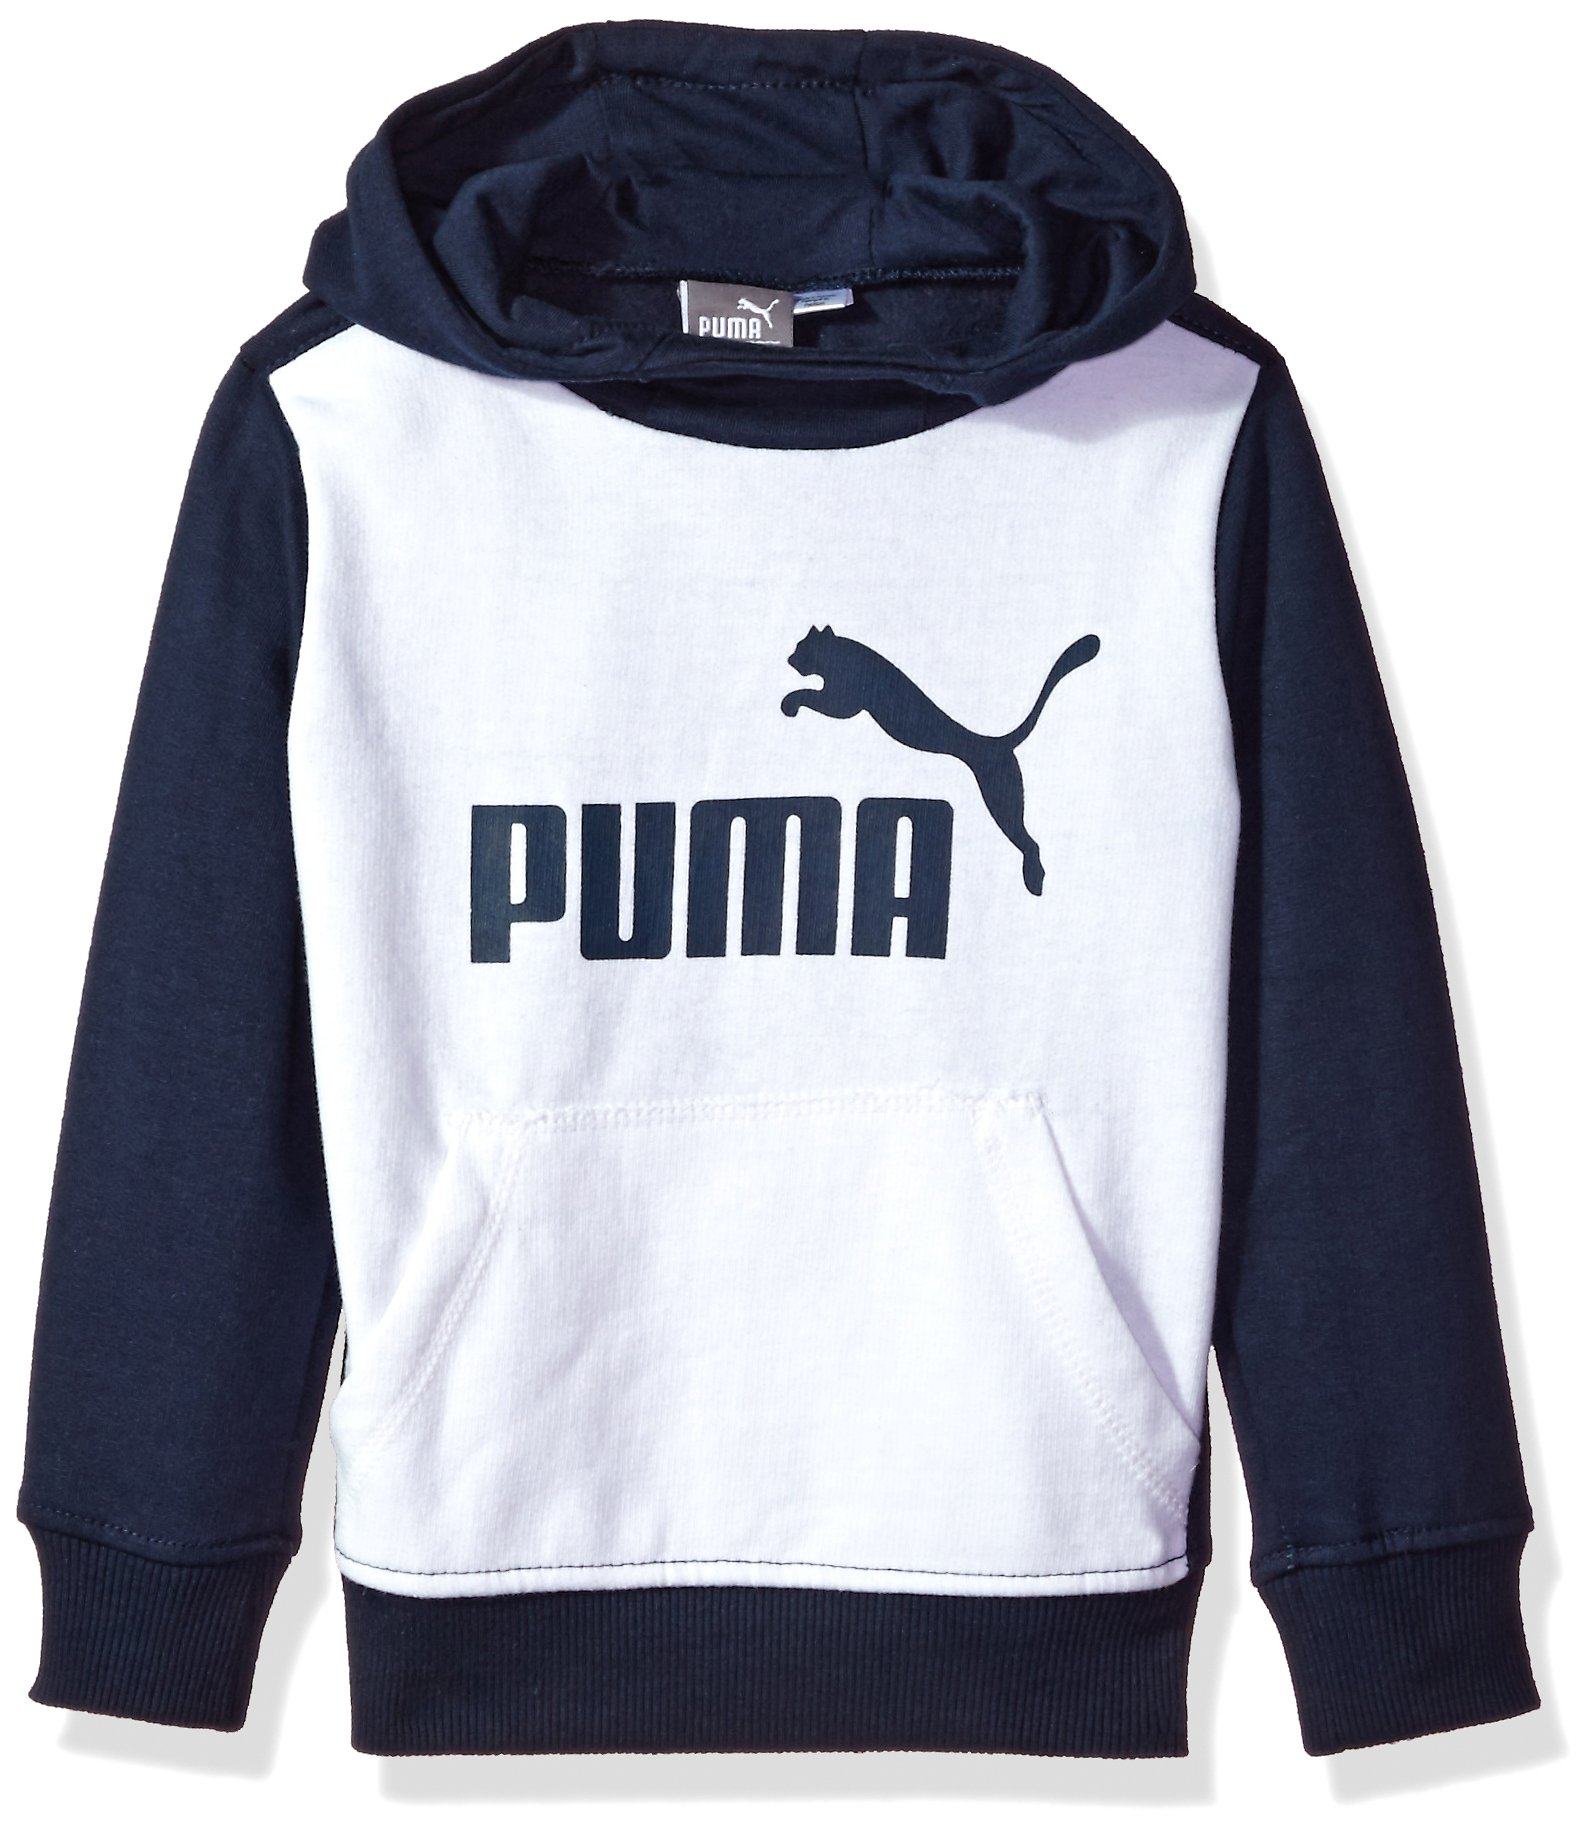 PUMA Toddler Boys' Pullover Hoodie, White, 4T